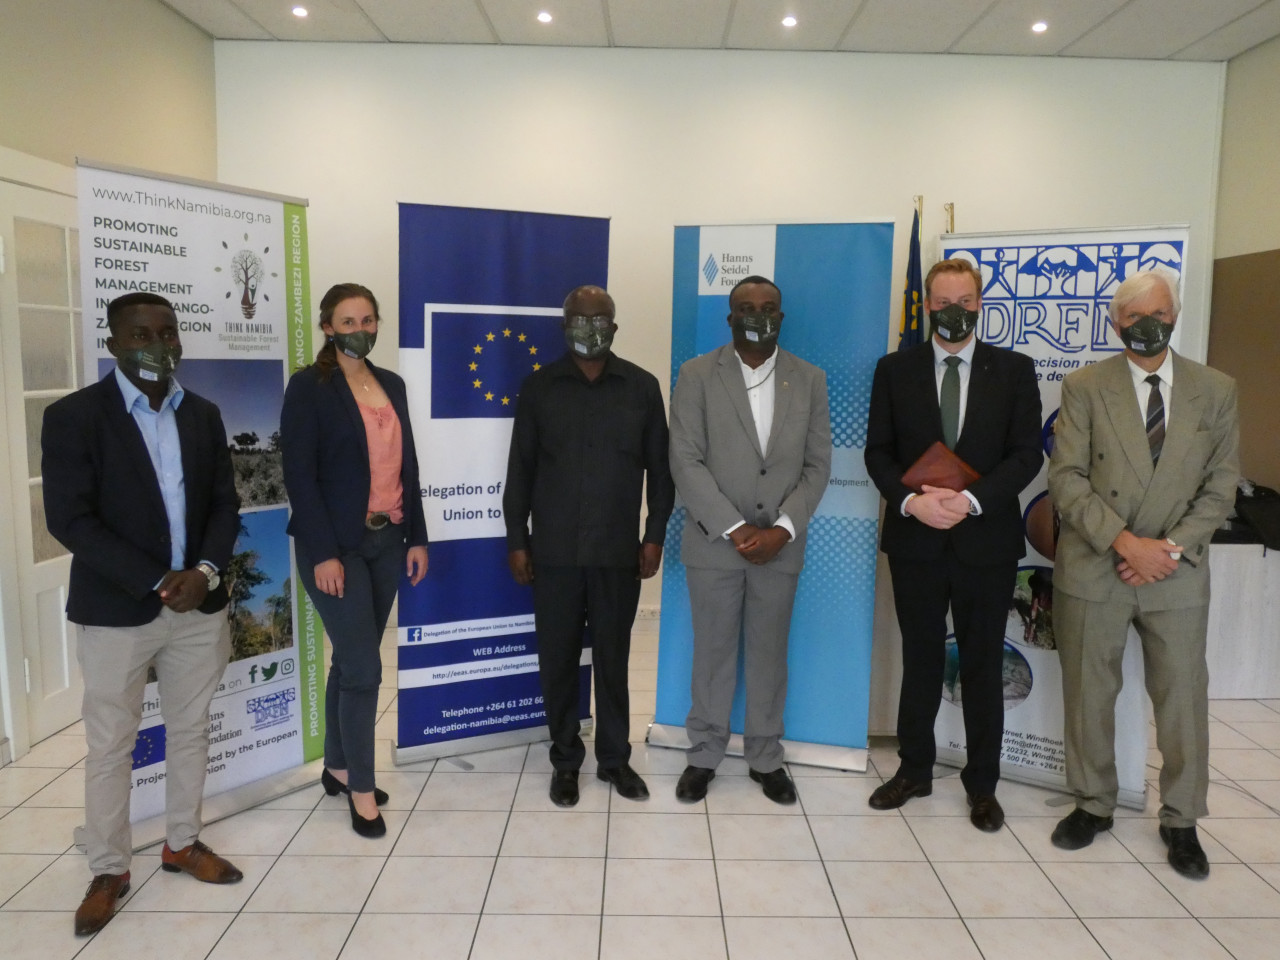 Promoting Sustainable Forest Management in the Kavango-Zambezi-Region in Namibia' Project Officially Launches at the House of Democracy